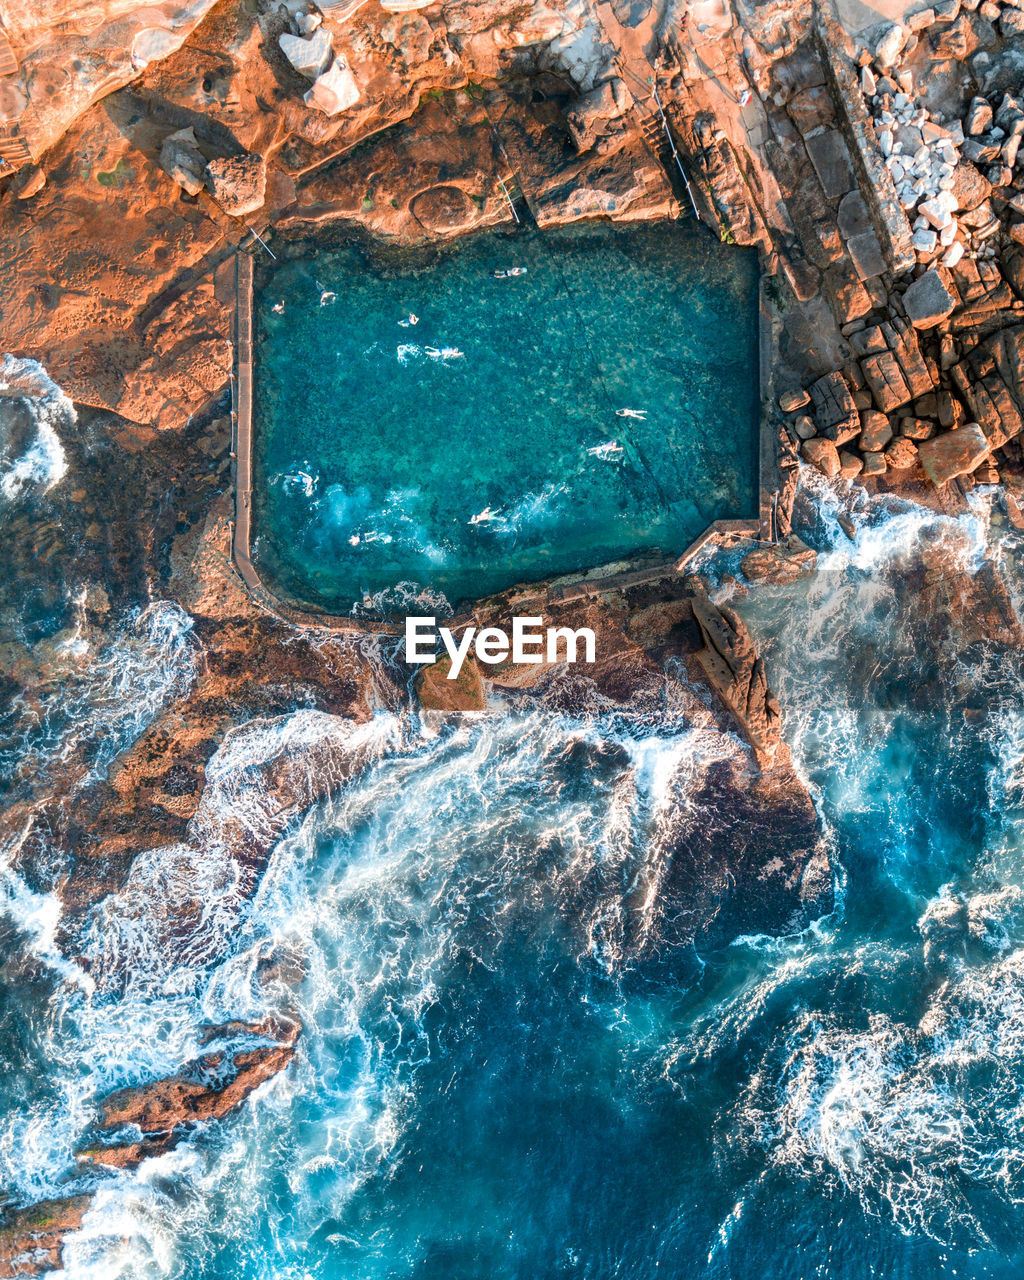 Aerial view of swimming pool in rock formation